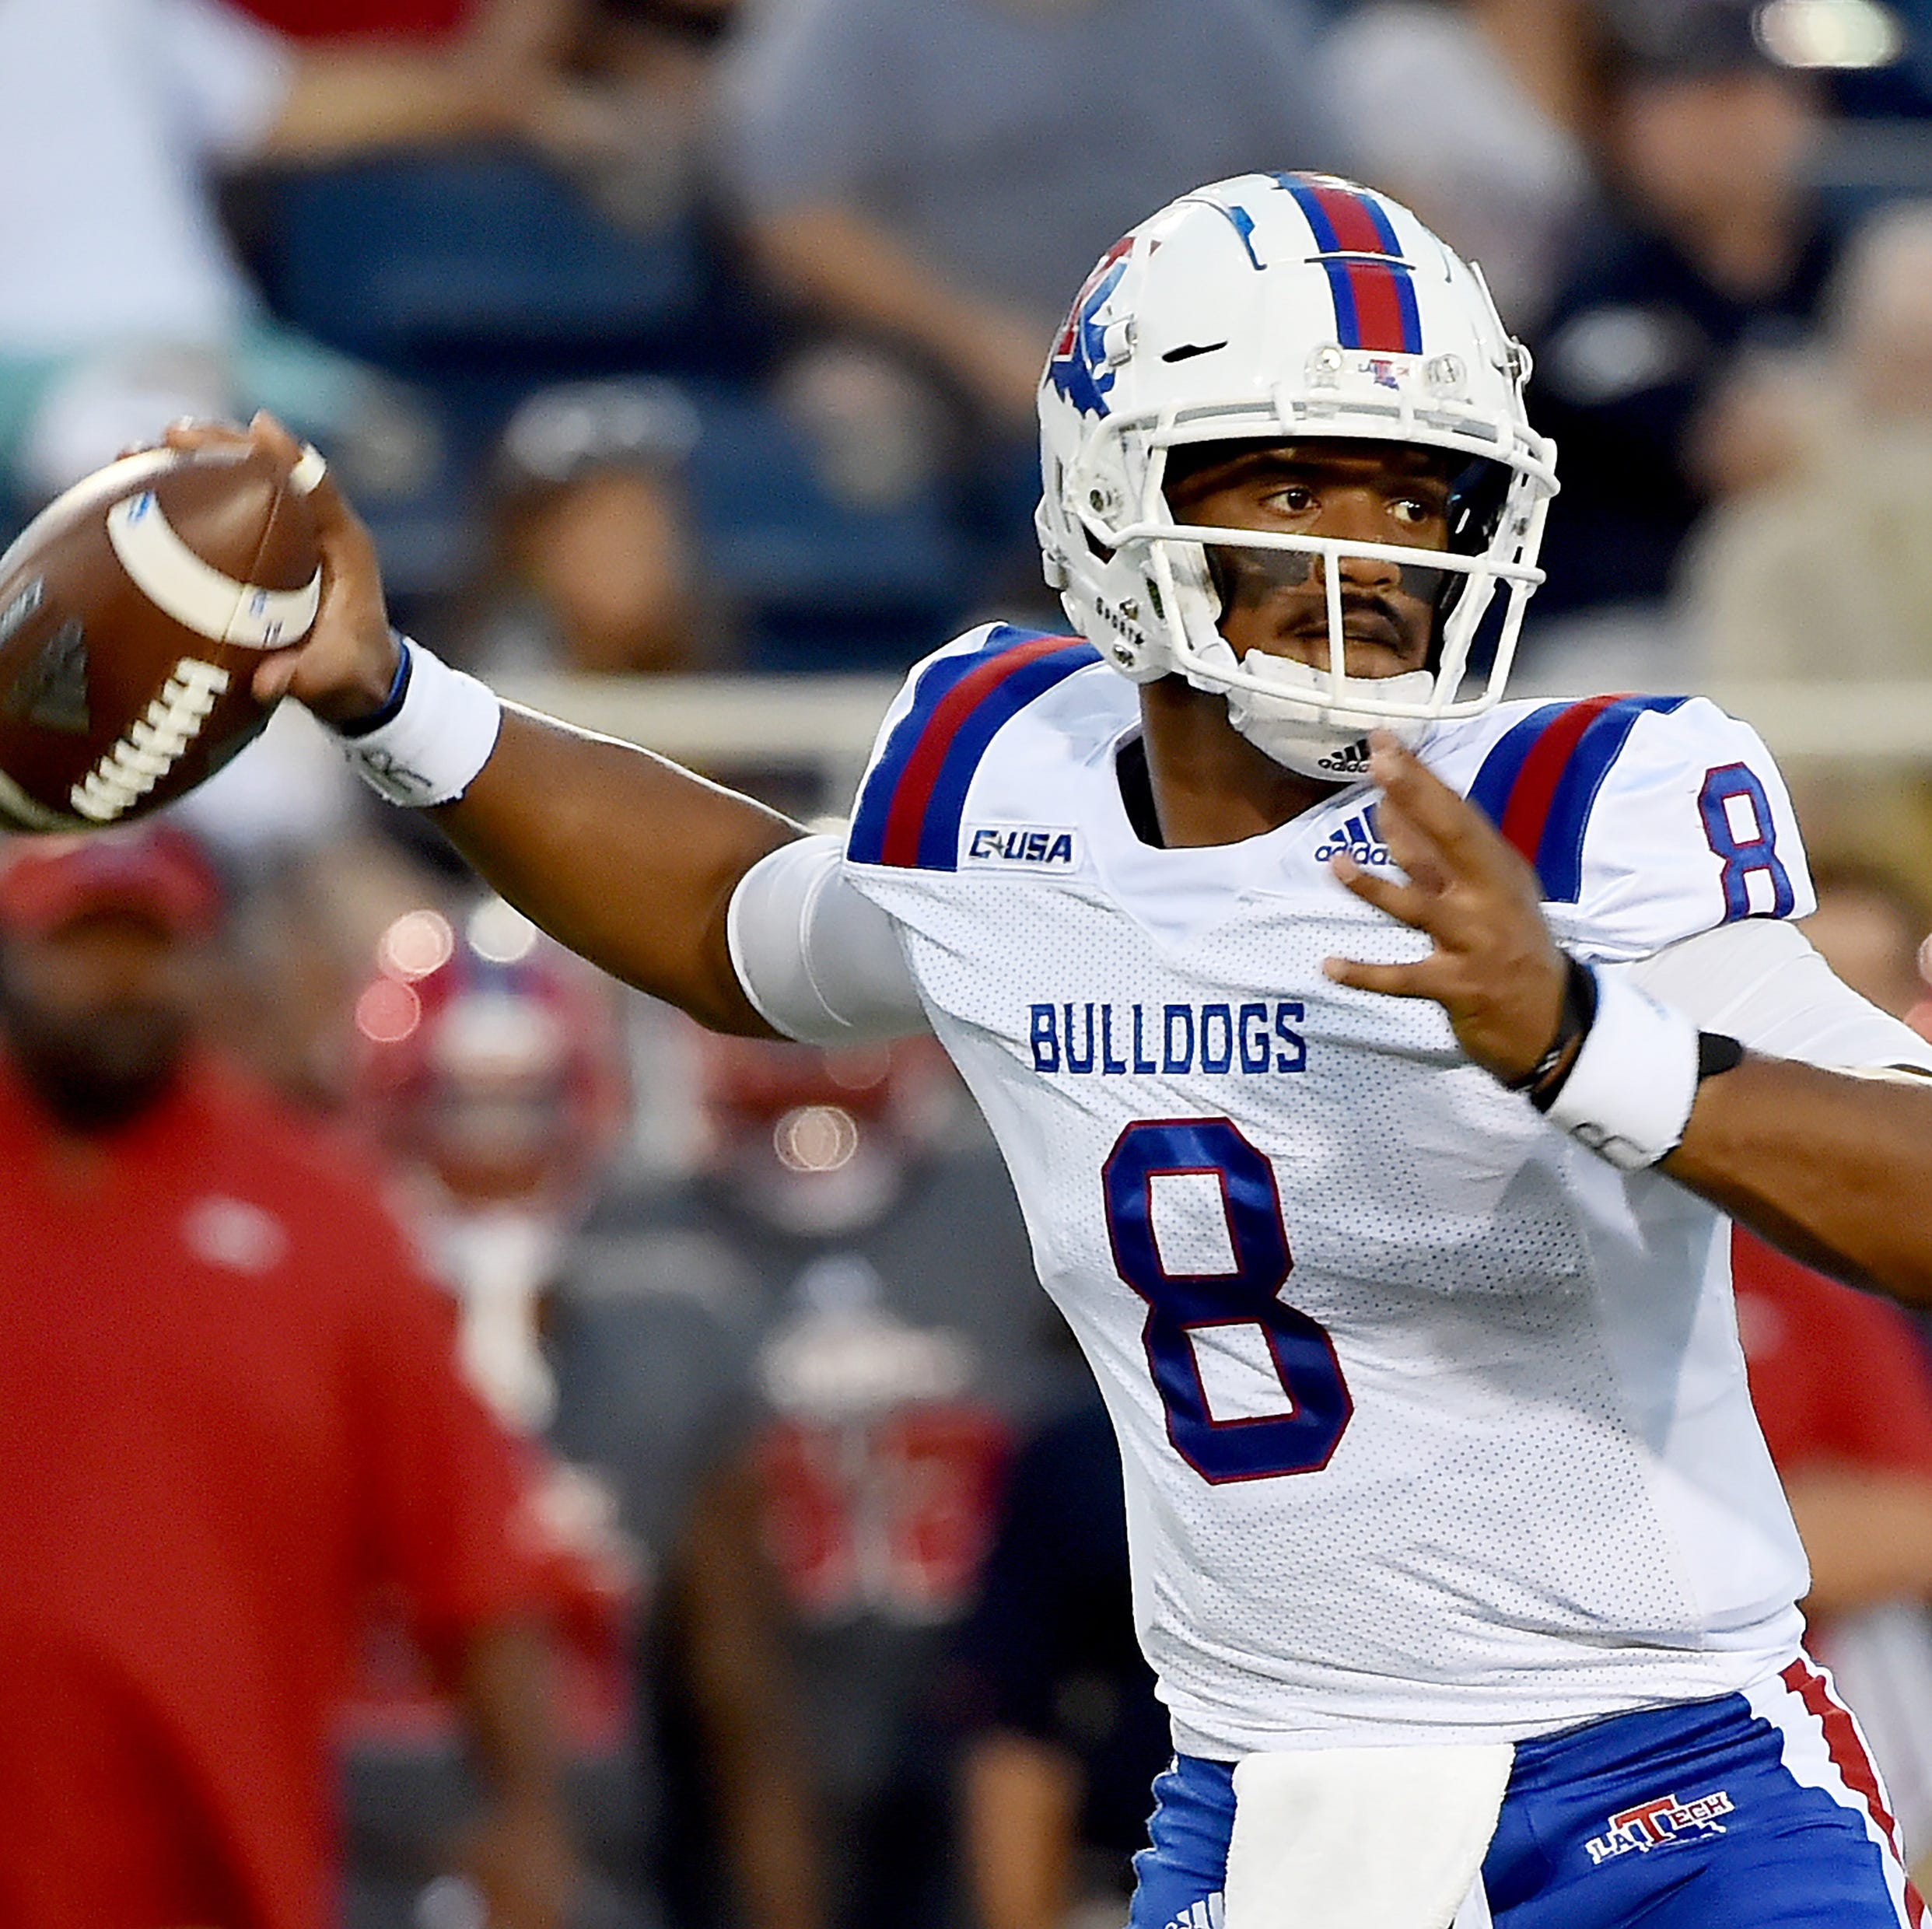 How to watch, listen to Louisiana Tech game